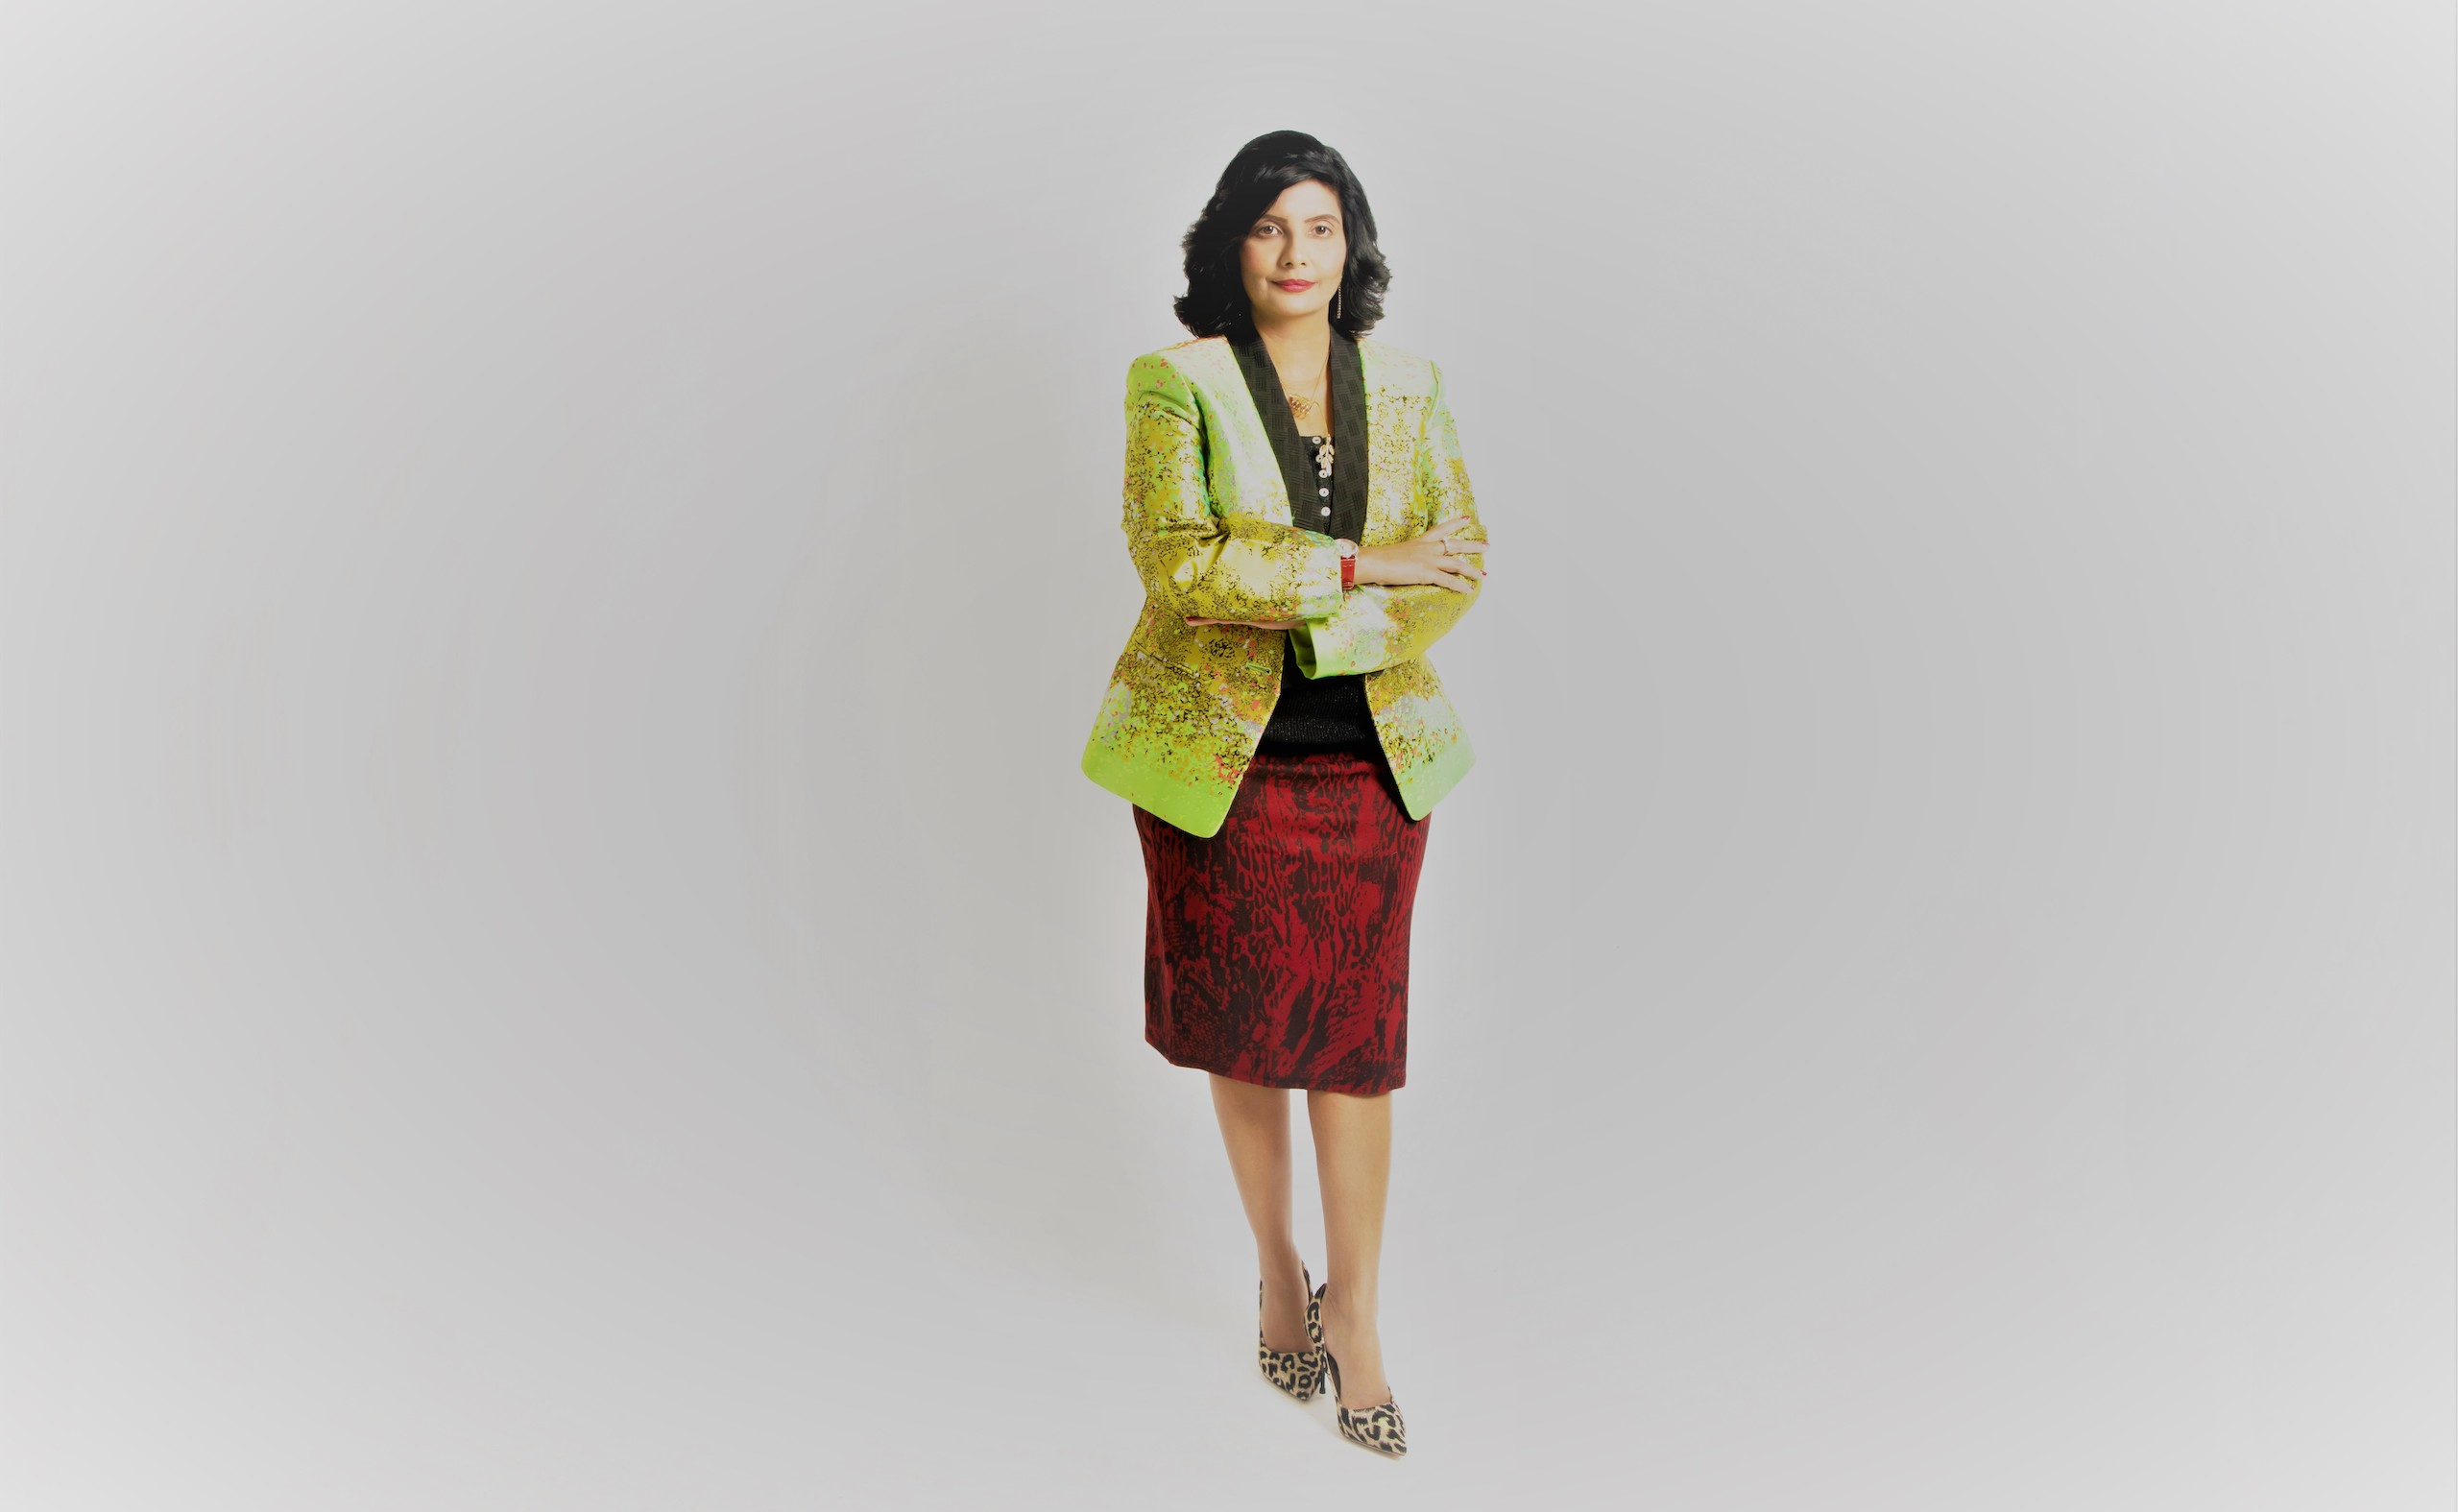 Businesswoman Aradhna Dayal talks about investment clubs and being a female entrepreneur in finance